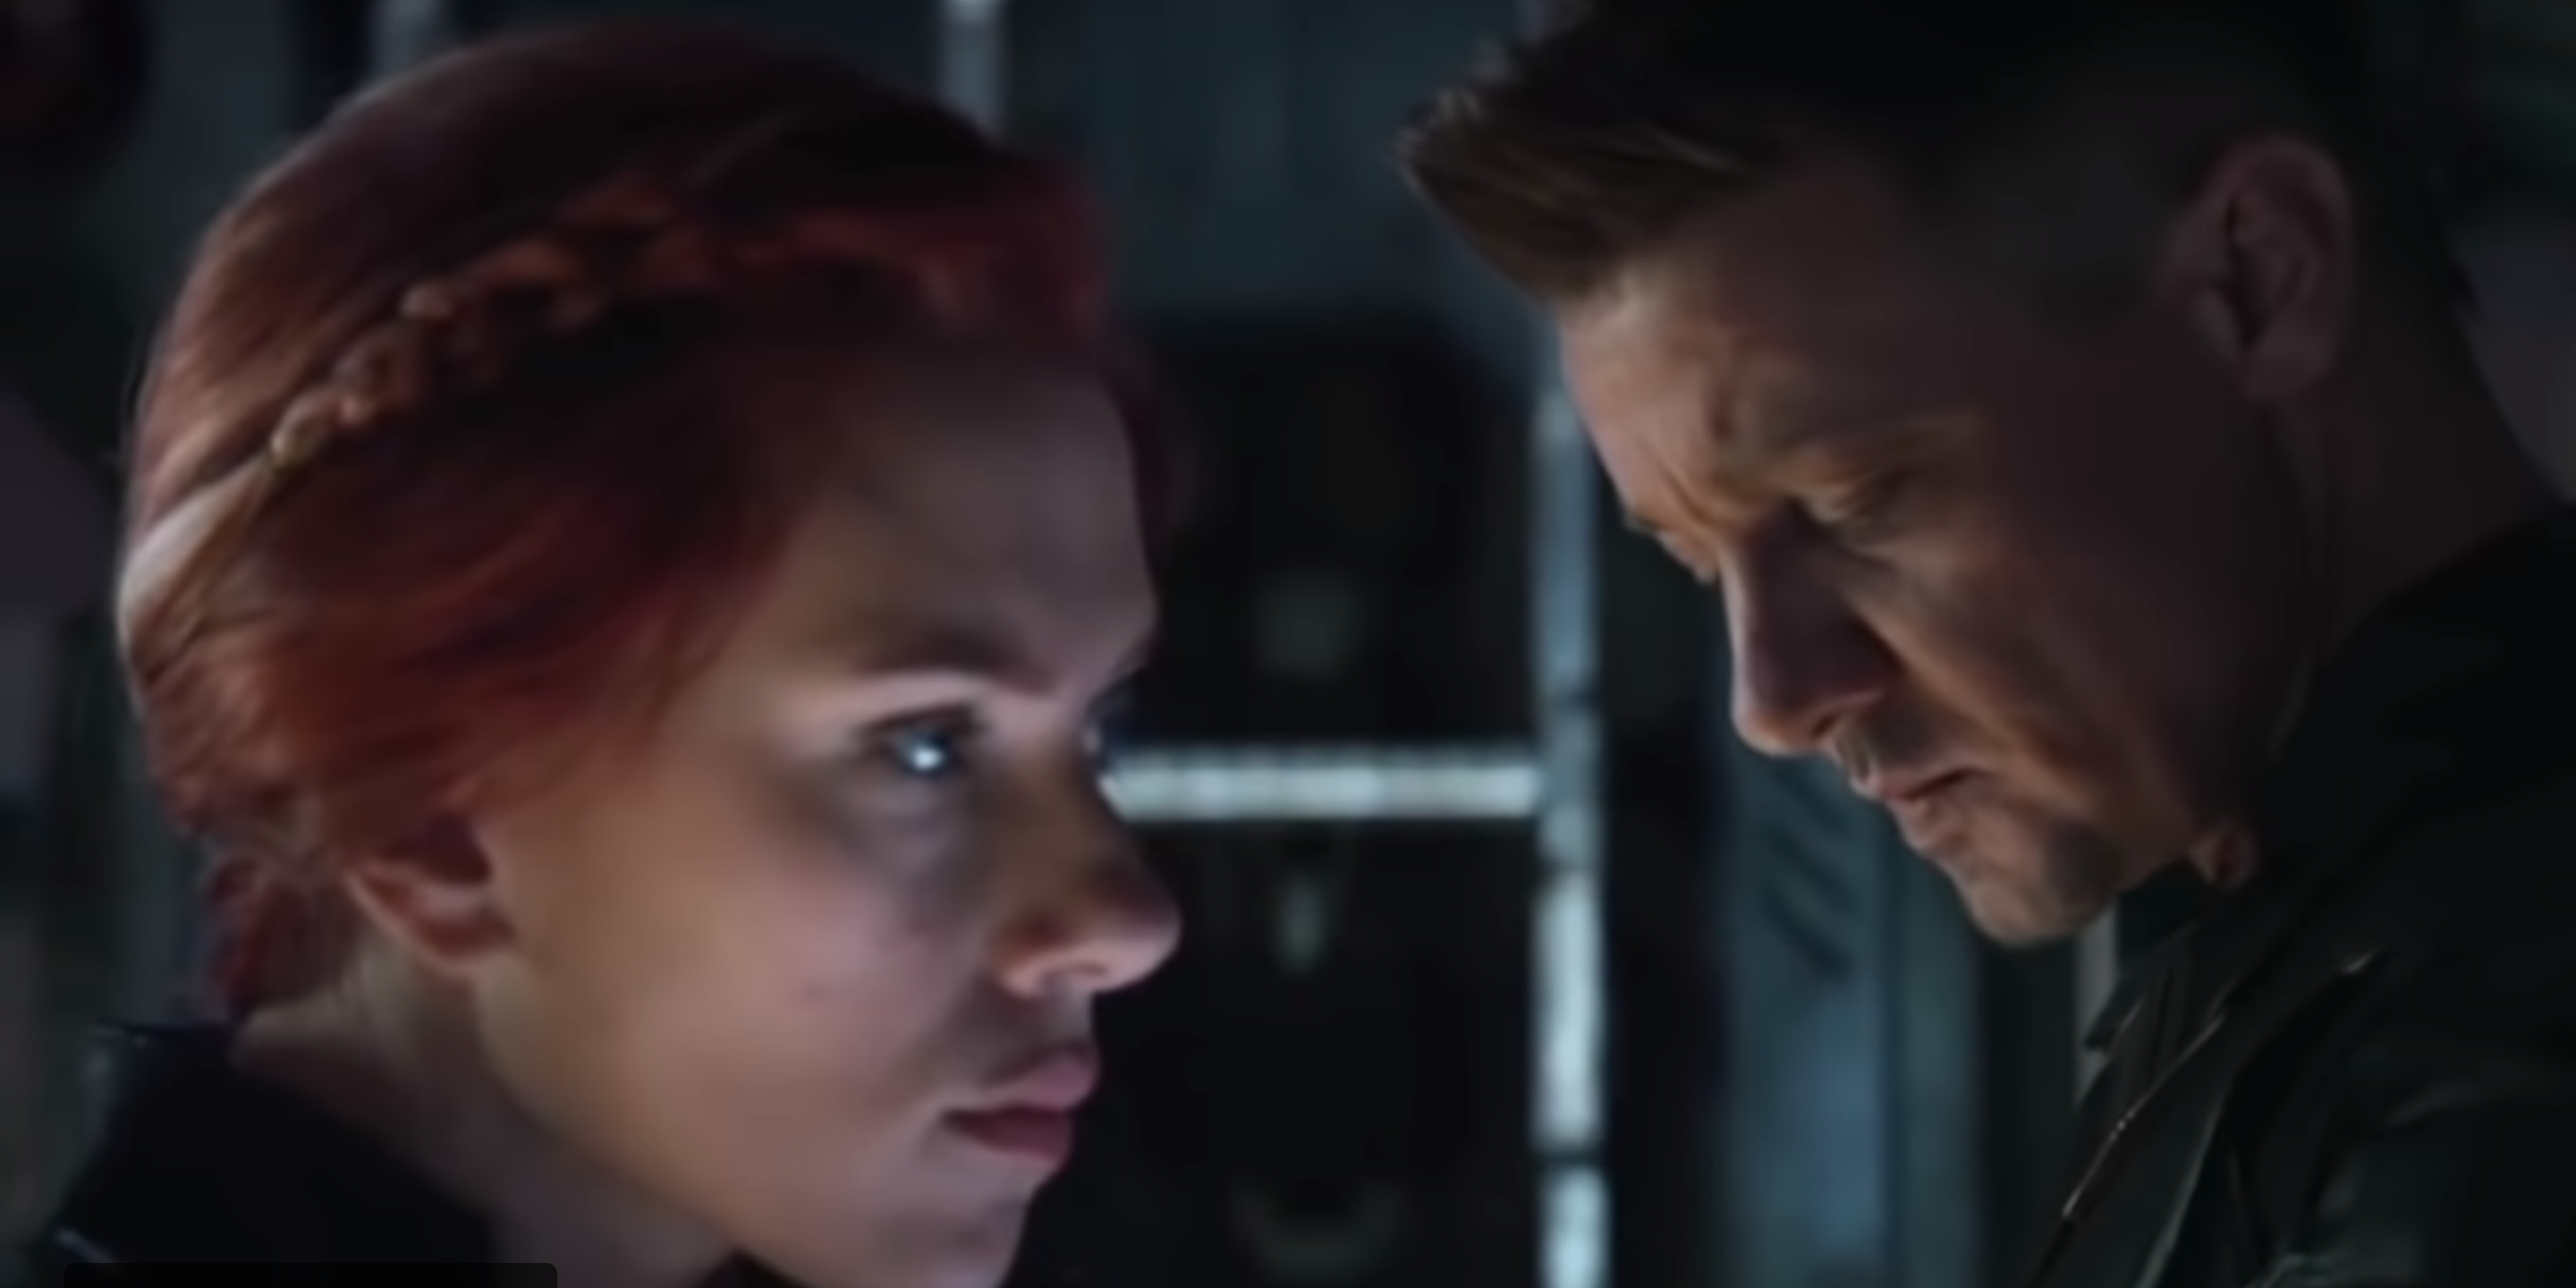 VIDEO: What Nobody Realized About Black Widow and Ronin in the Avengers: Endgame Trailer